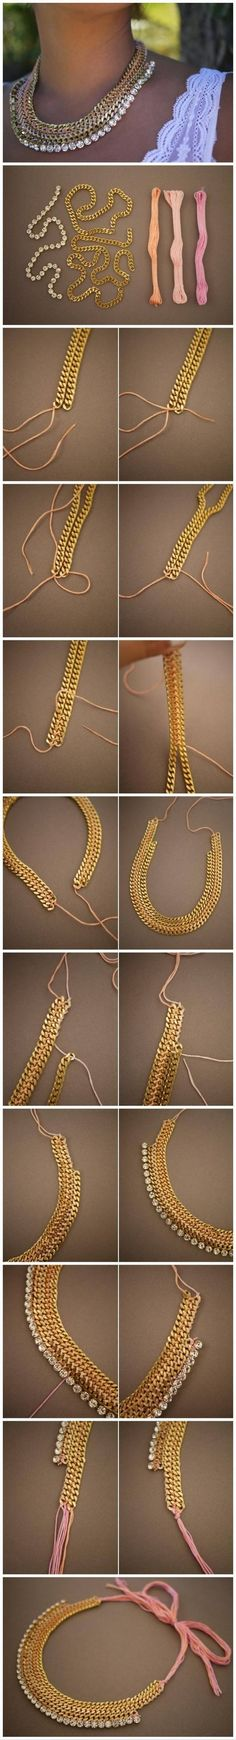 DIY Classy Necklace Pictures, Photos, and Images for Facebook, Tumblr, Pinterest, and Twitter